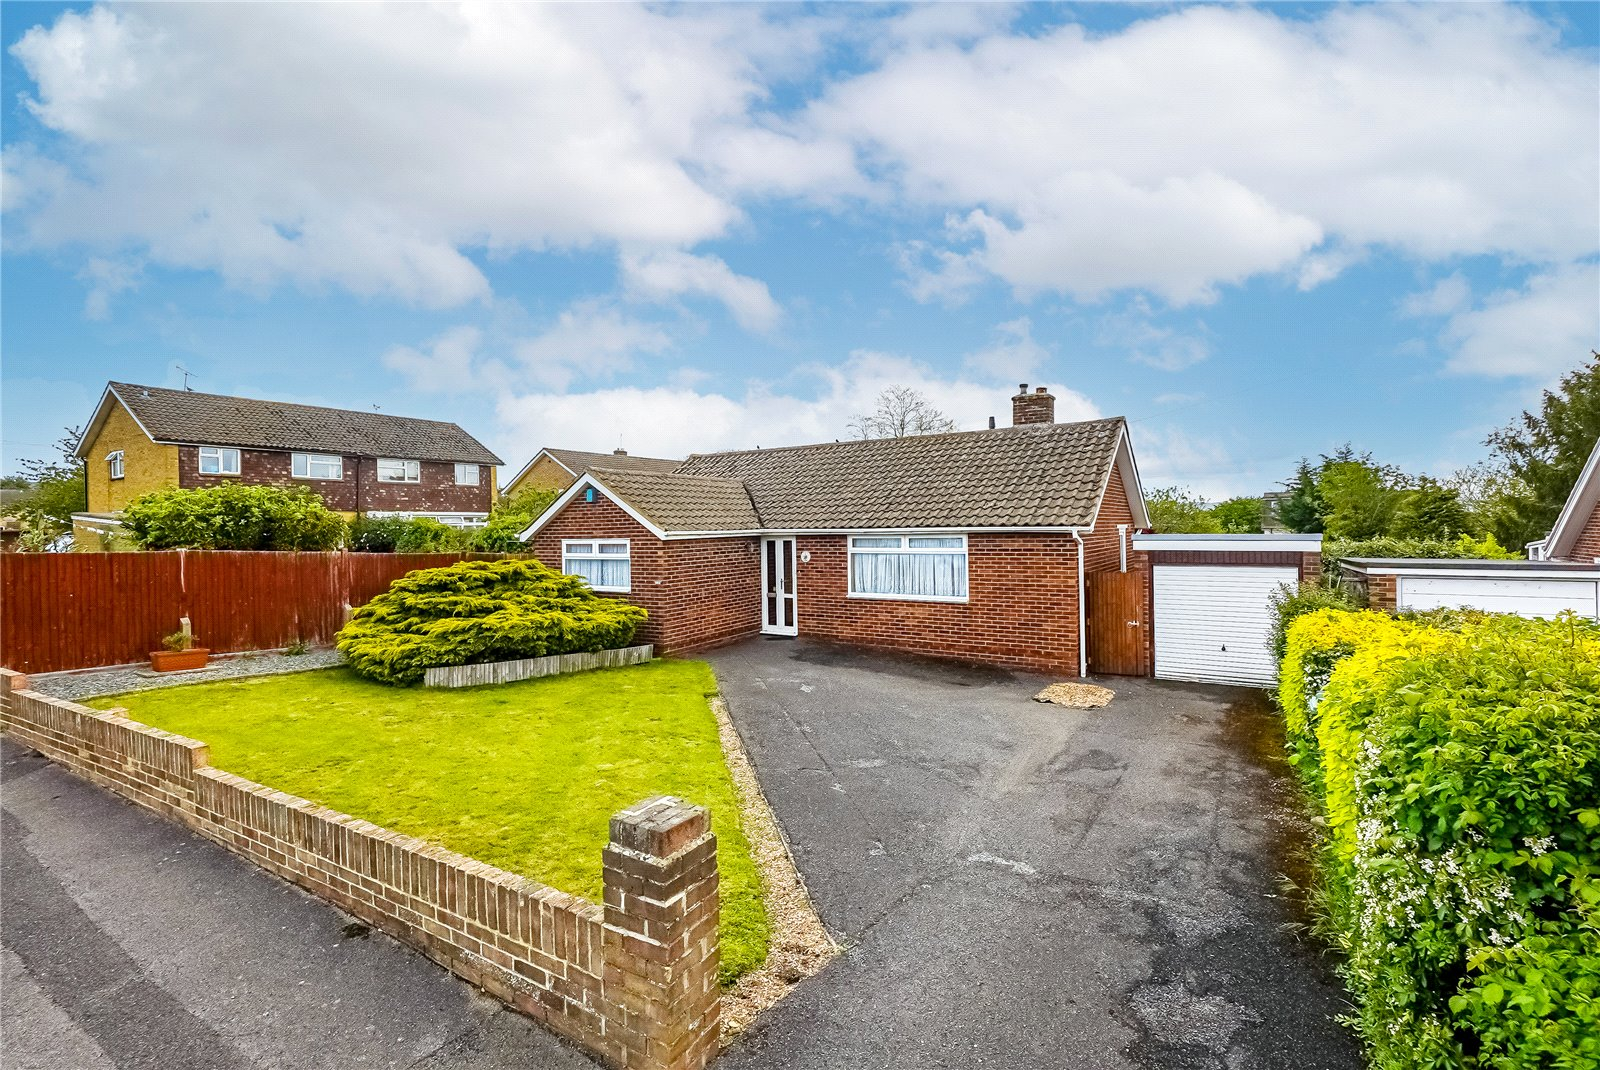 3 bed bungalow for sale in Ridgway, Maidstone, ME16